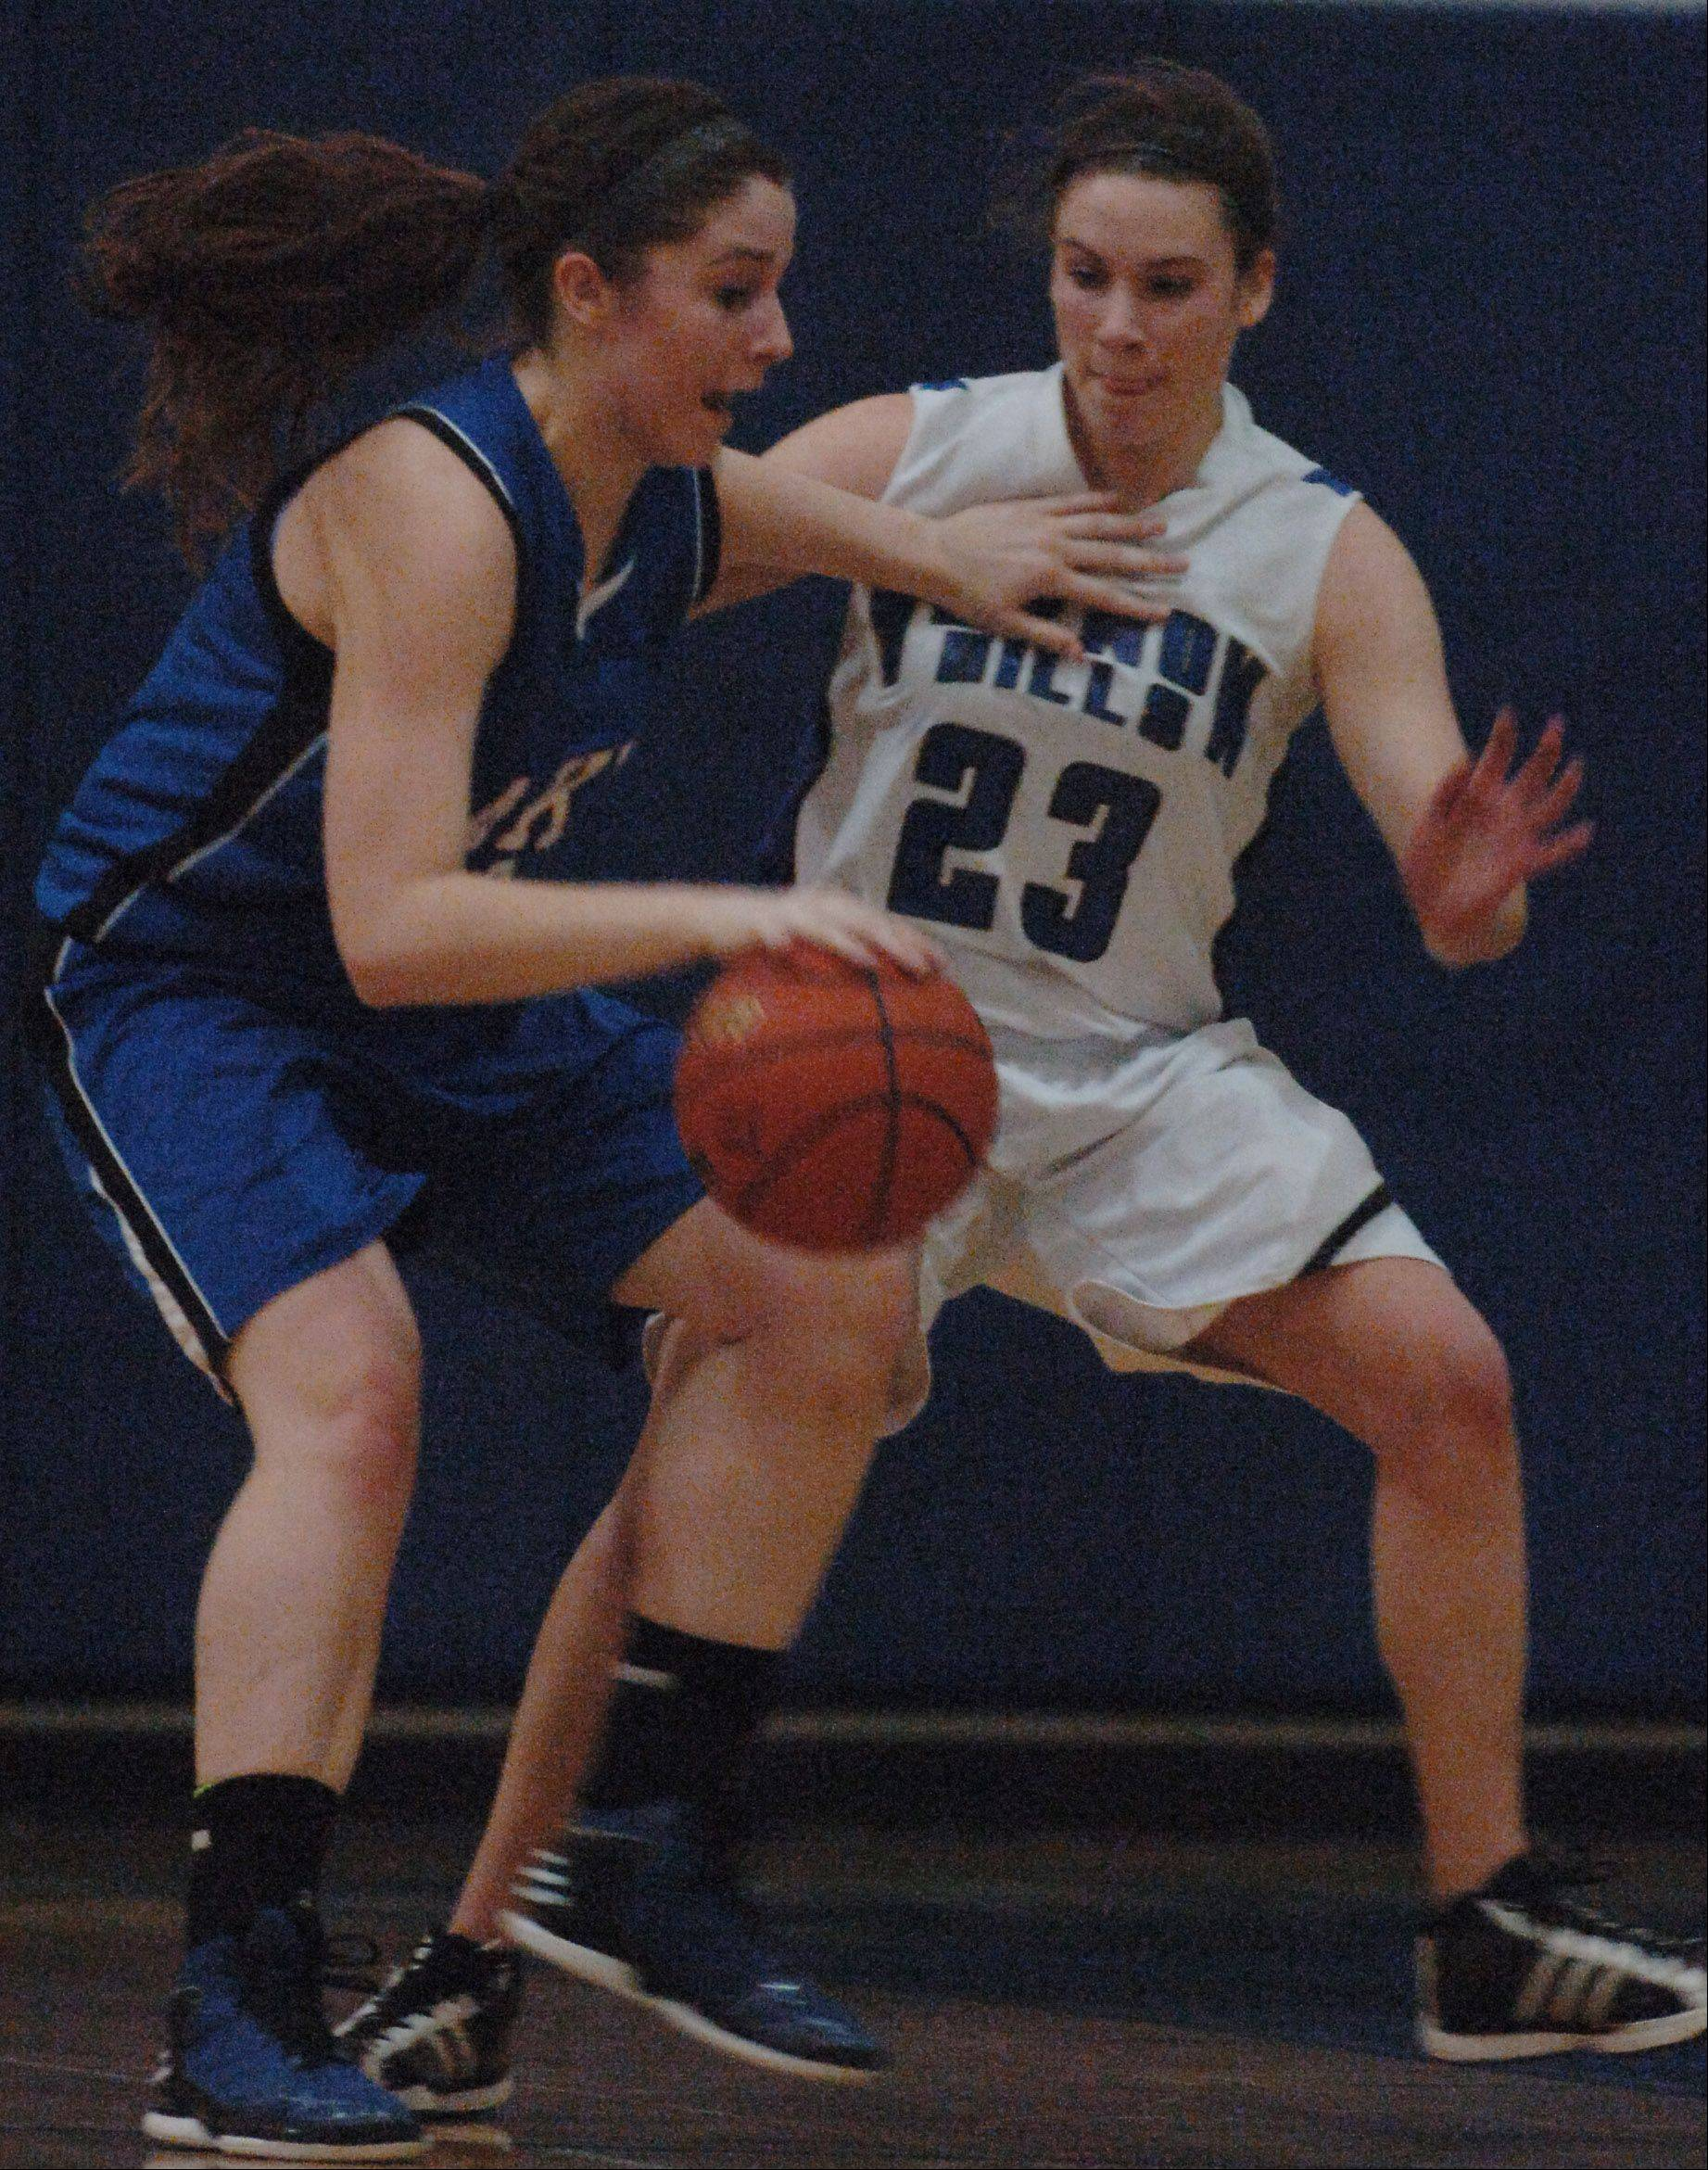 Paul Valade/pvalade@dailyherald.com Lakes' Terese McMahon, left, keeps Vernon Hills' Brie Bahlmann at arm's length during Thursday's Class 3A basketball regional final in Lake Villa.